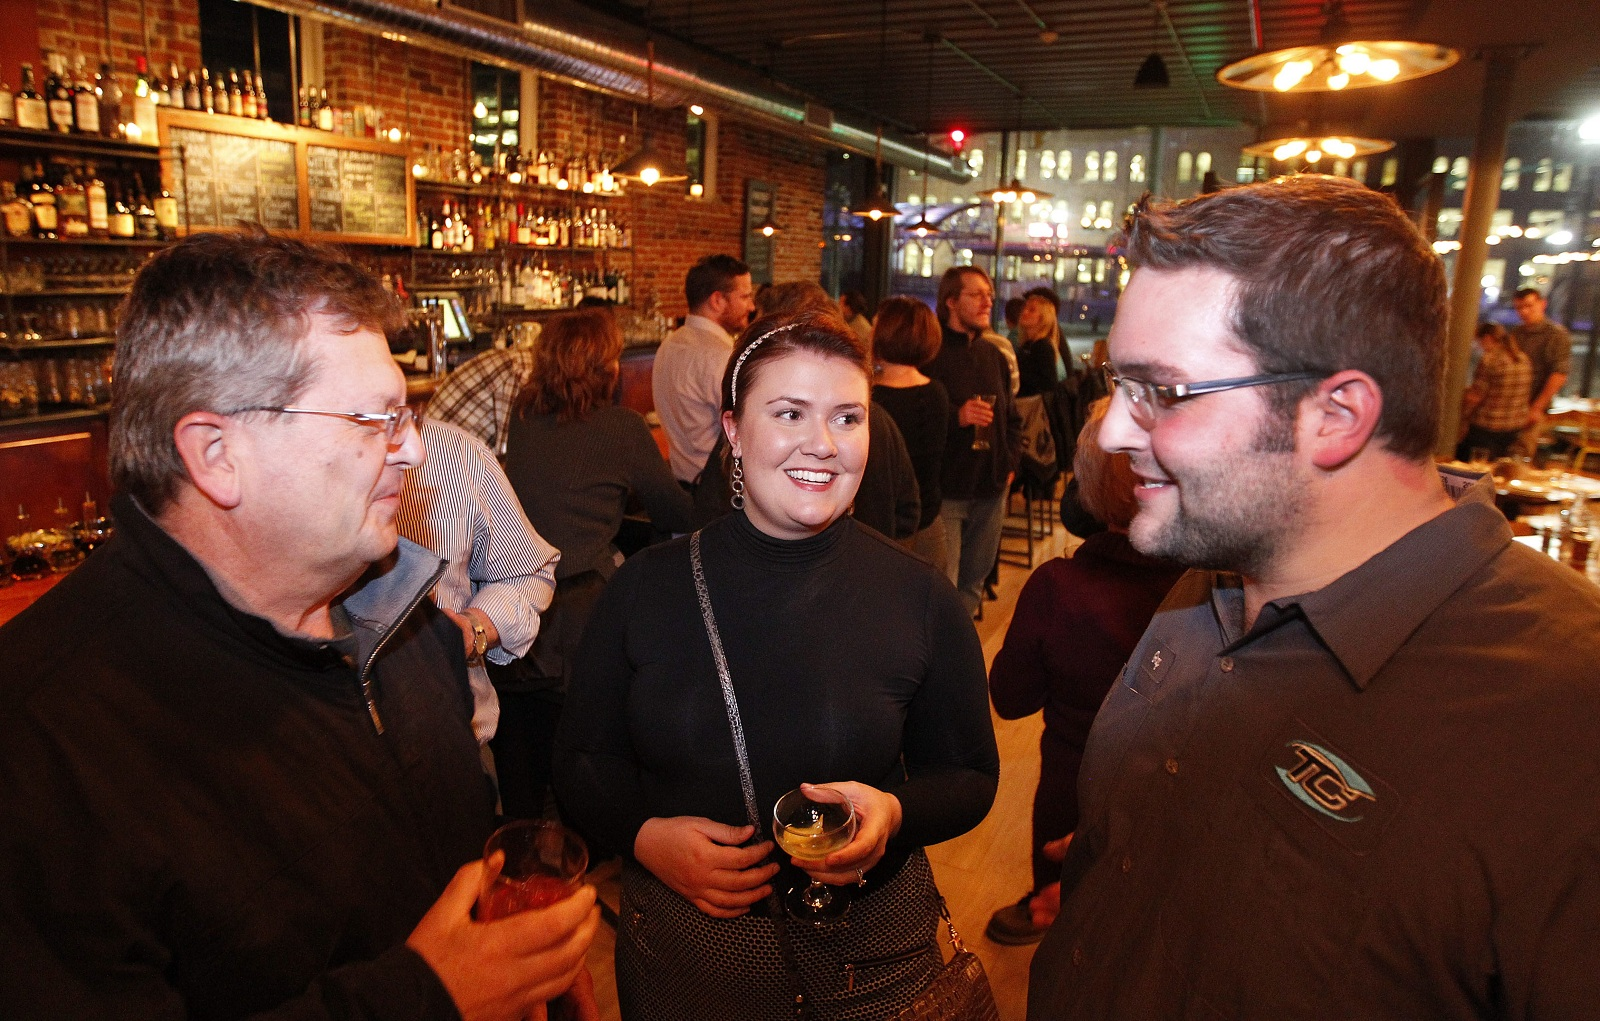 Hanging out in Hydraulic Hearth are, from left, Joe Pokorski of Depew and Lauren and Greg Davis of Lackawanna. (Sharon Cantillon/Buffalo News)